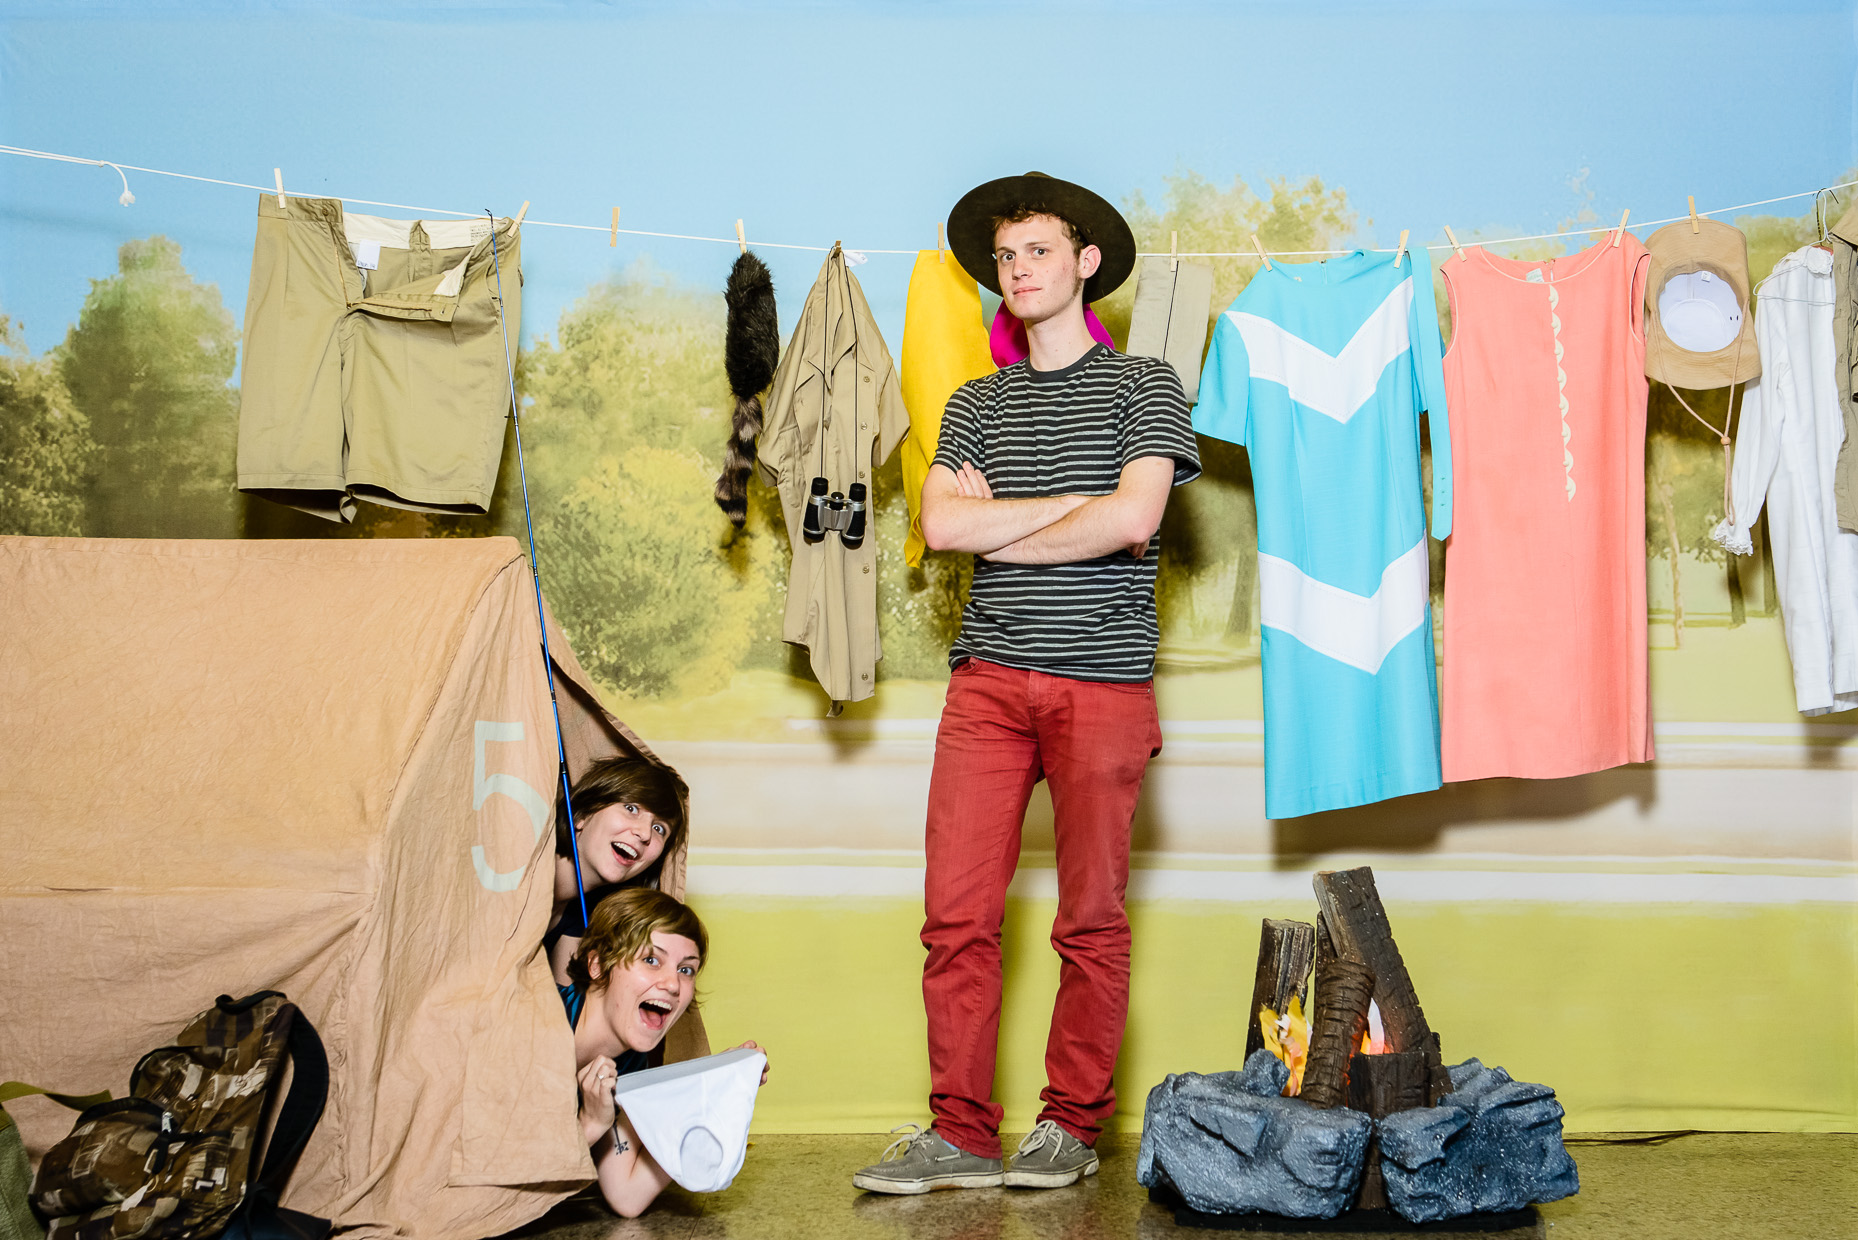 Austin-Photobooth-Photographer-Commercial-Moonrise- Kingdom.jpg